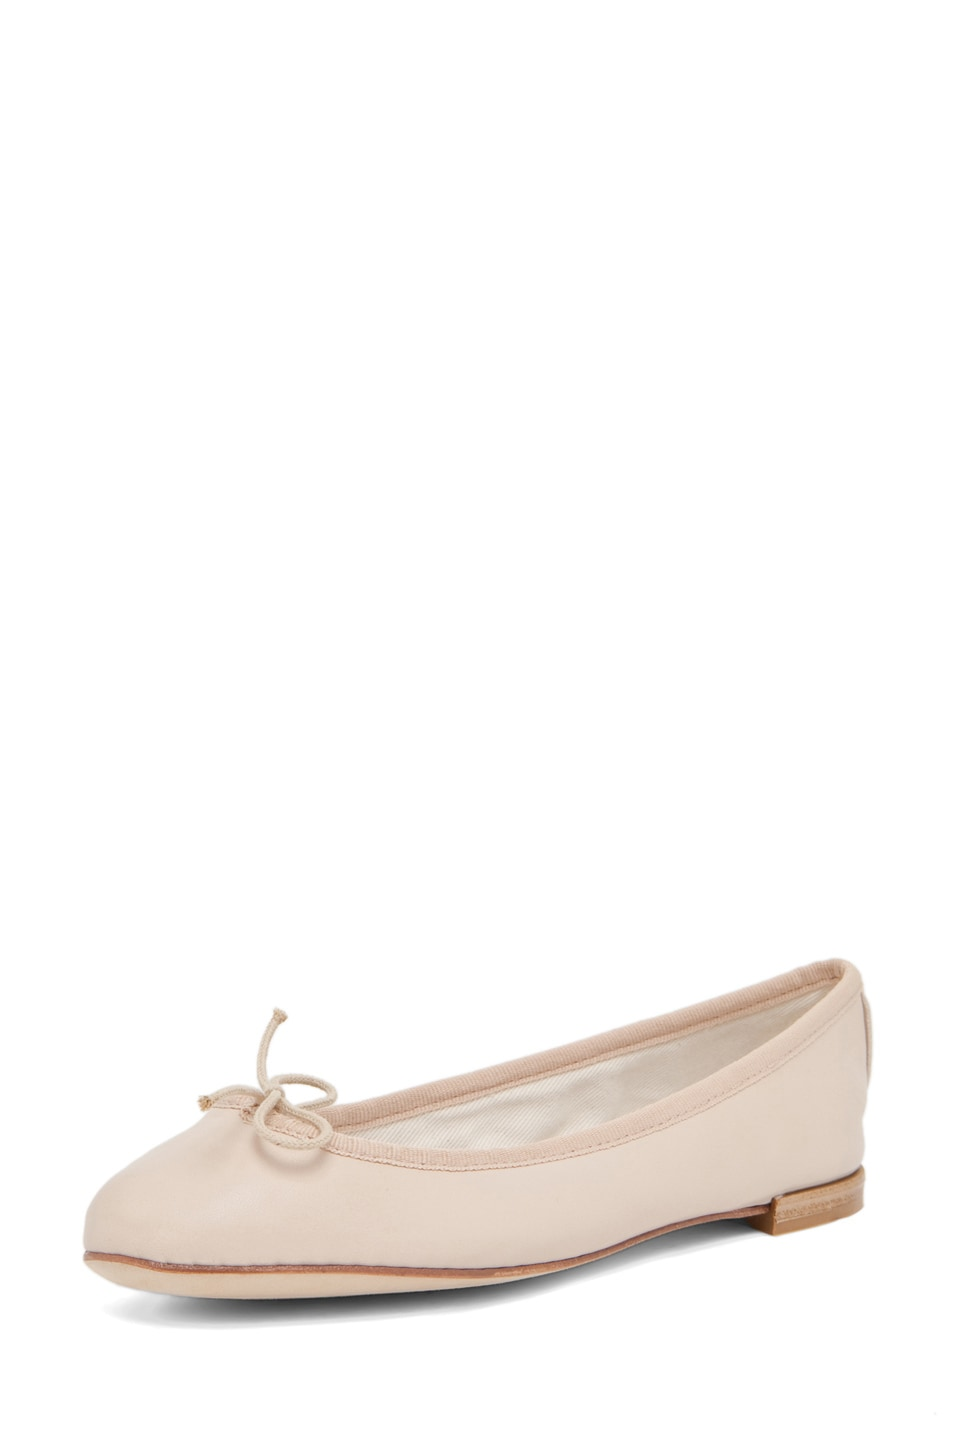 Image 2 of Repetto Lambskin Flat in Nude